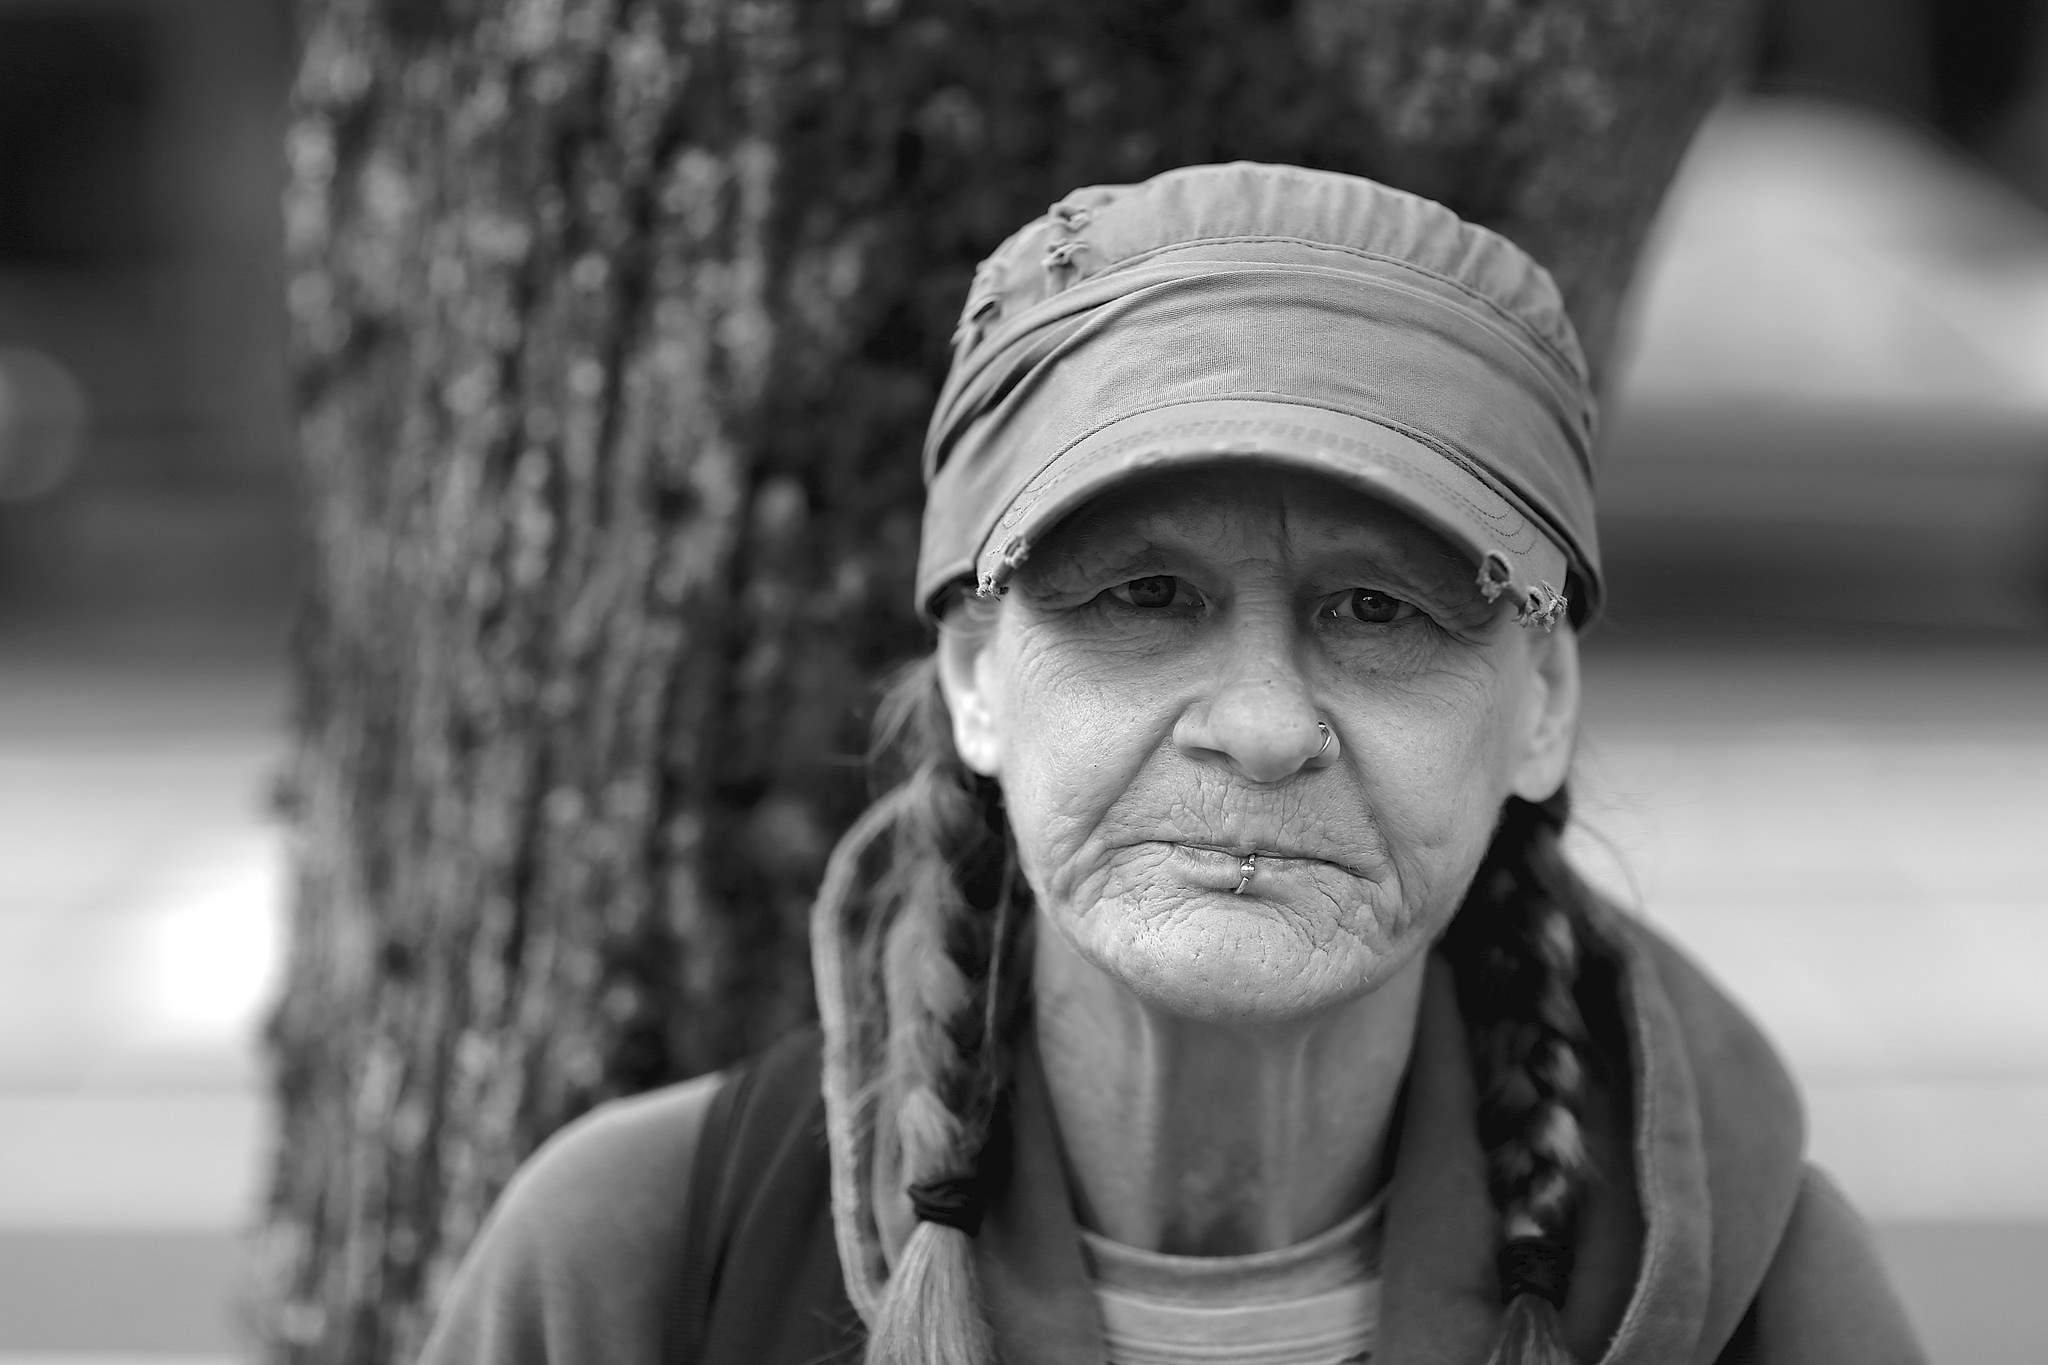 A homeless woman in Portland, Oregon